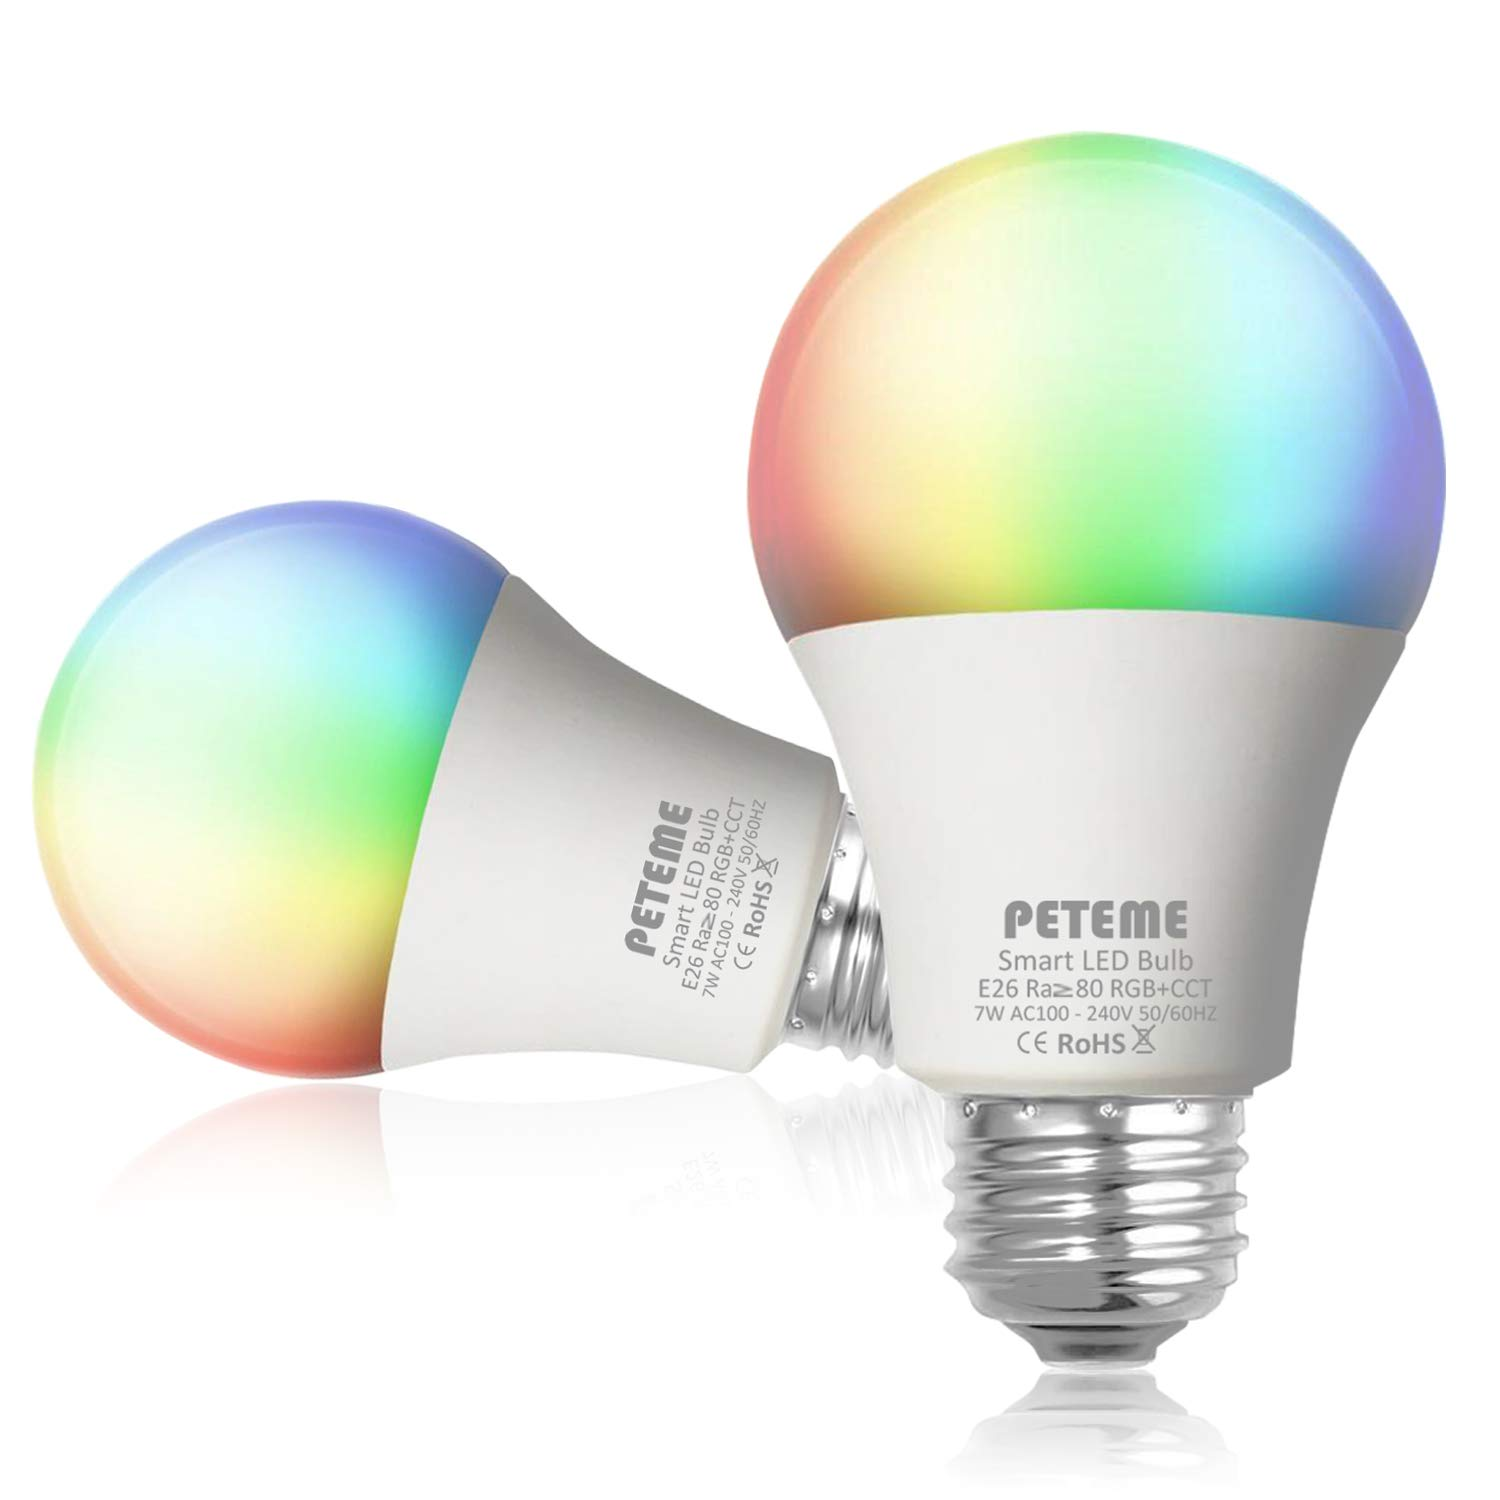 Smart LED Light Bulb E26 WiFi Multicolor Light Bulb Work with Siri,Alexa, Echo, Google Home and IFTTT (No Hub Required), Peteme A19 60W Equivalent RGB Color Changing Bulb (2 Pack)